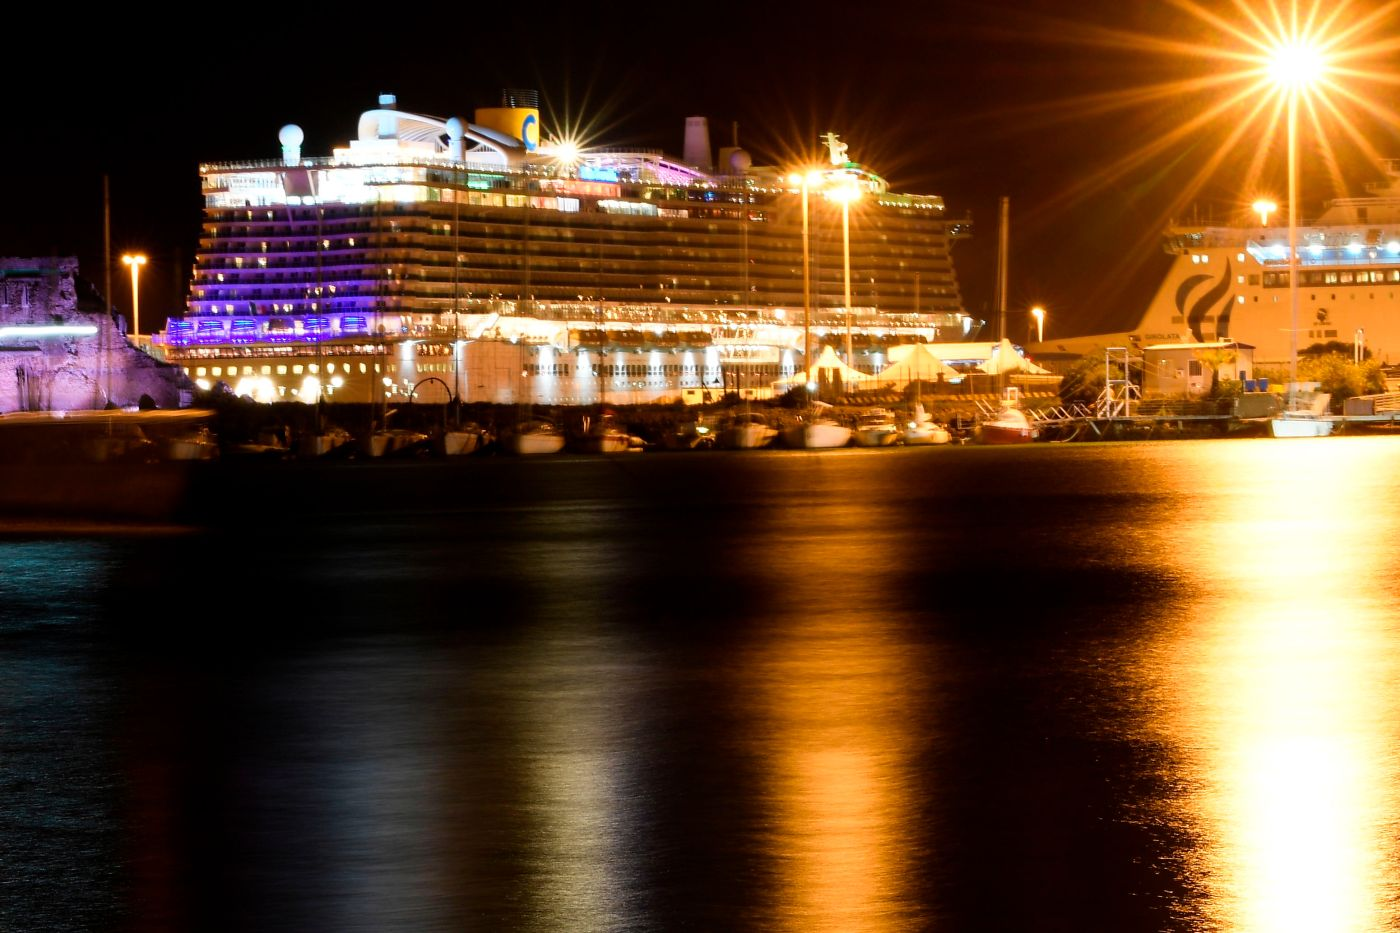 The Costa Smeralda cruise shop docked in the Civitavecchia port for the evening